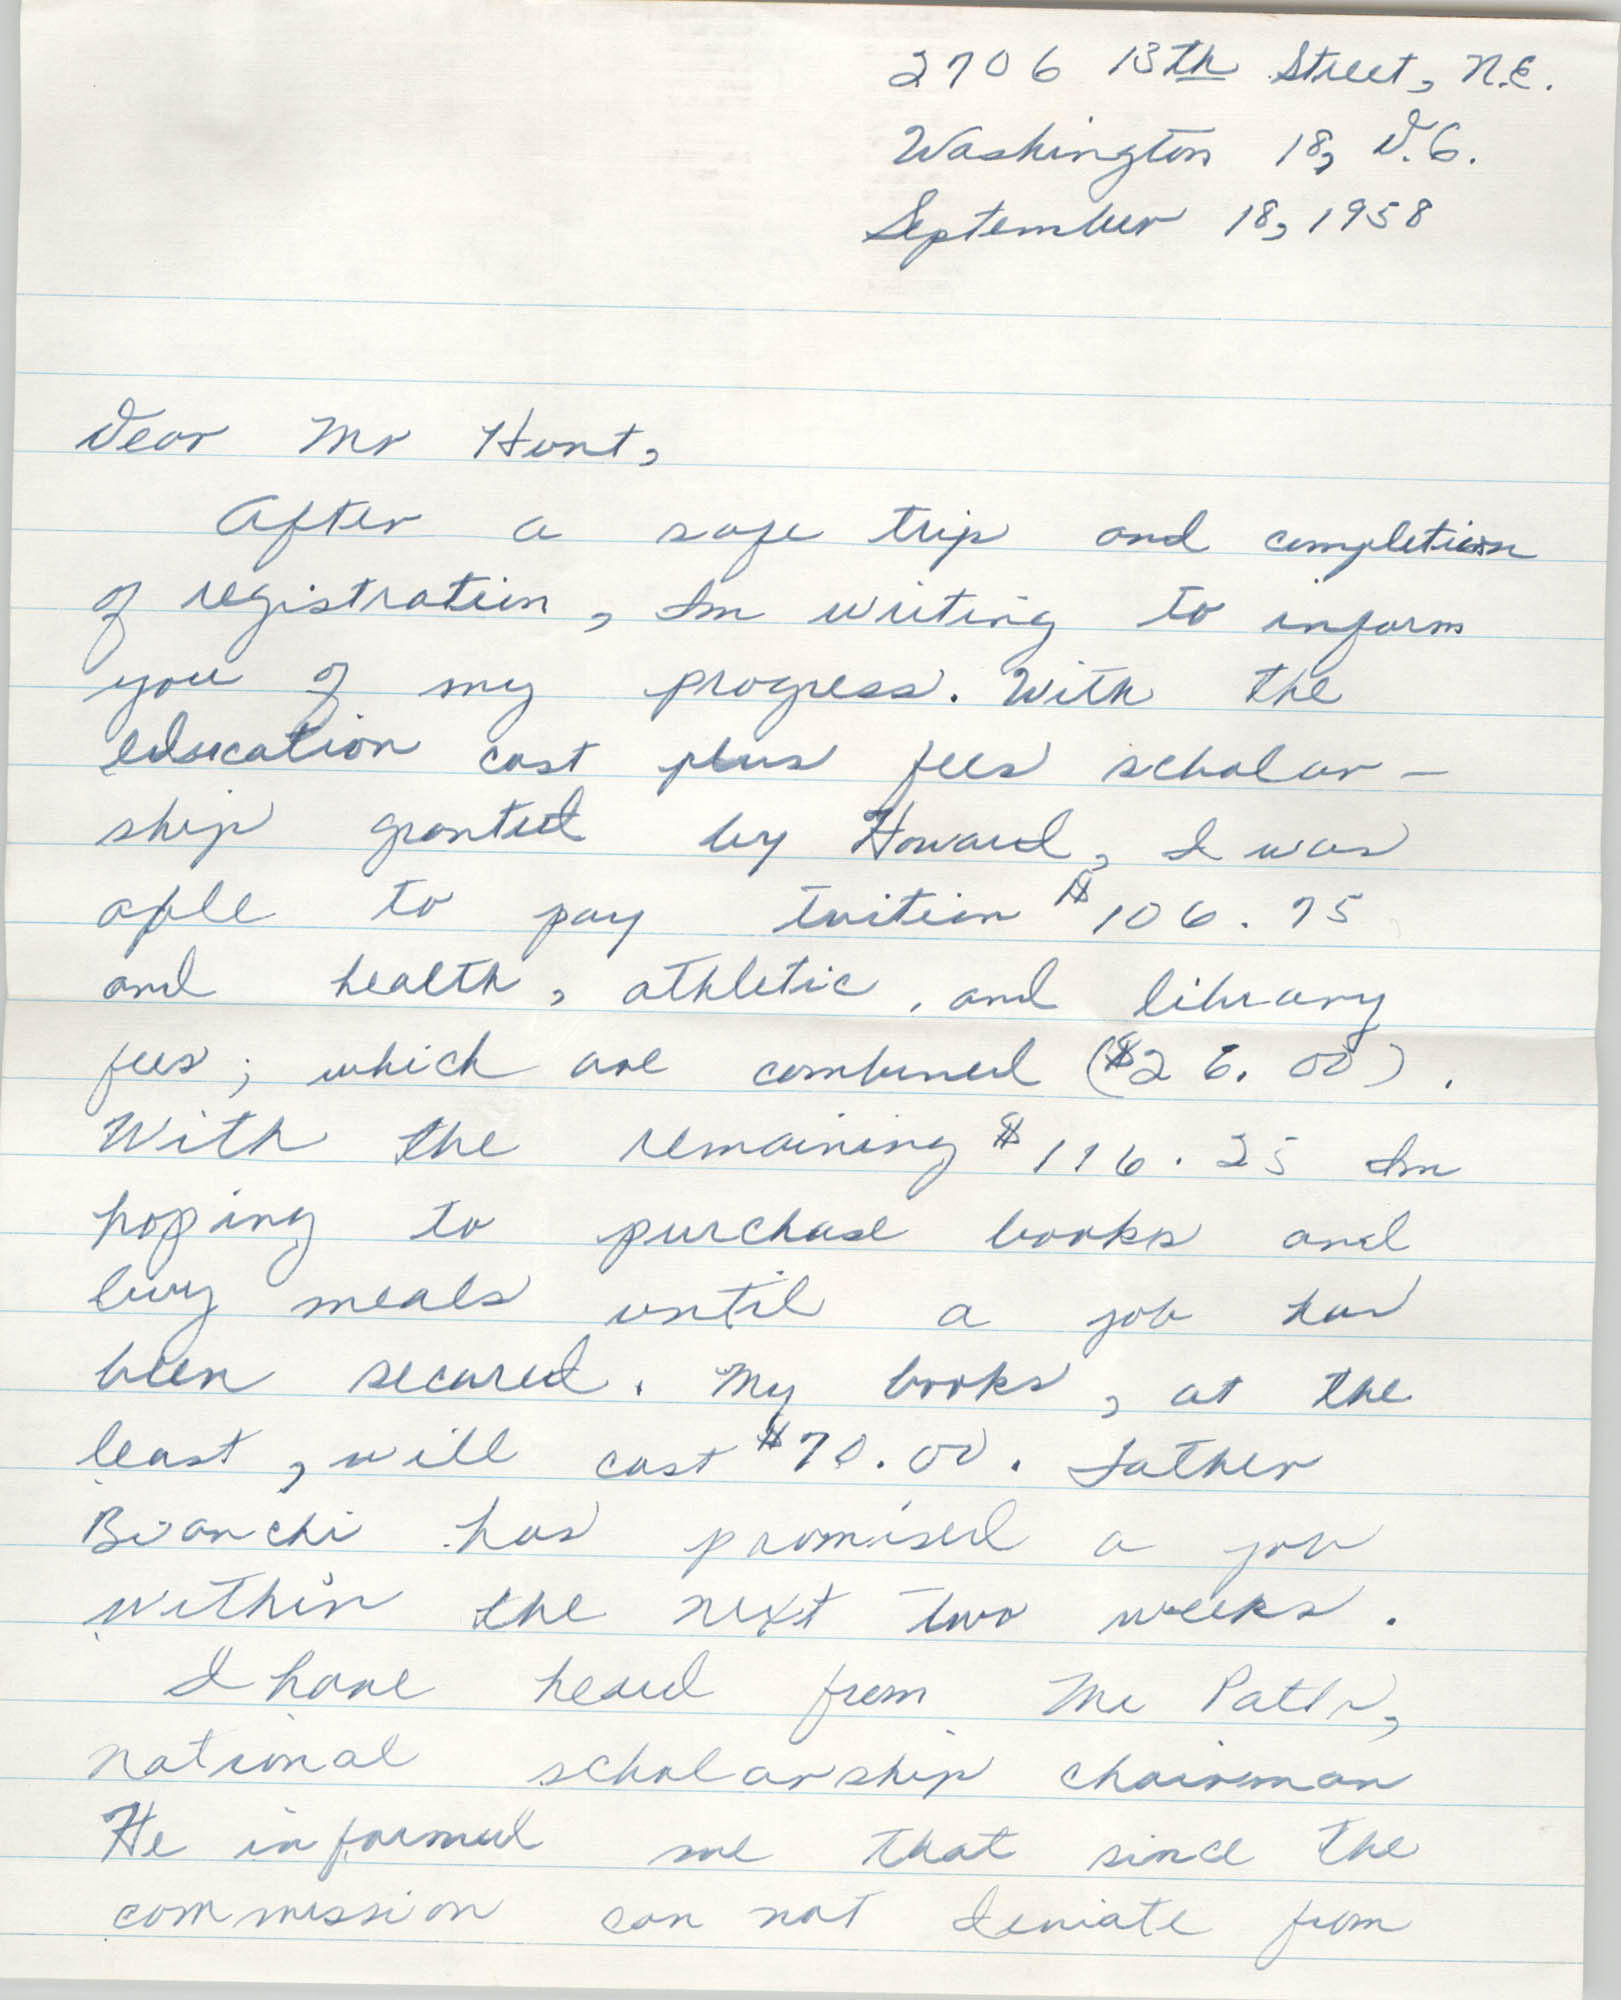 Letter from F. Henderson Moore to Eugene C. Hunt, September 18, 1958